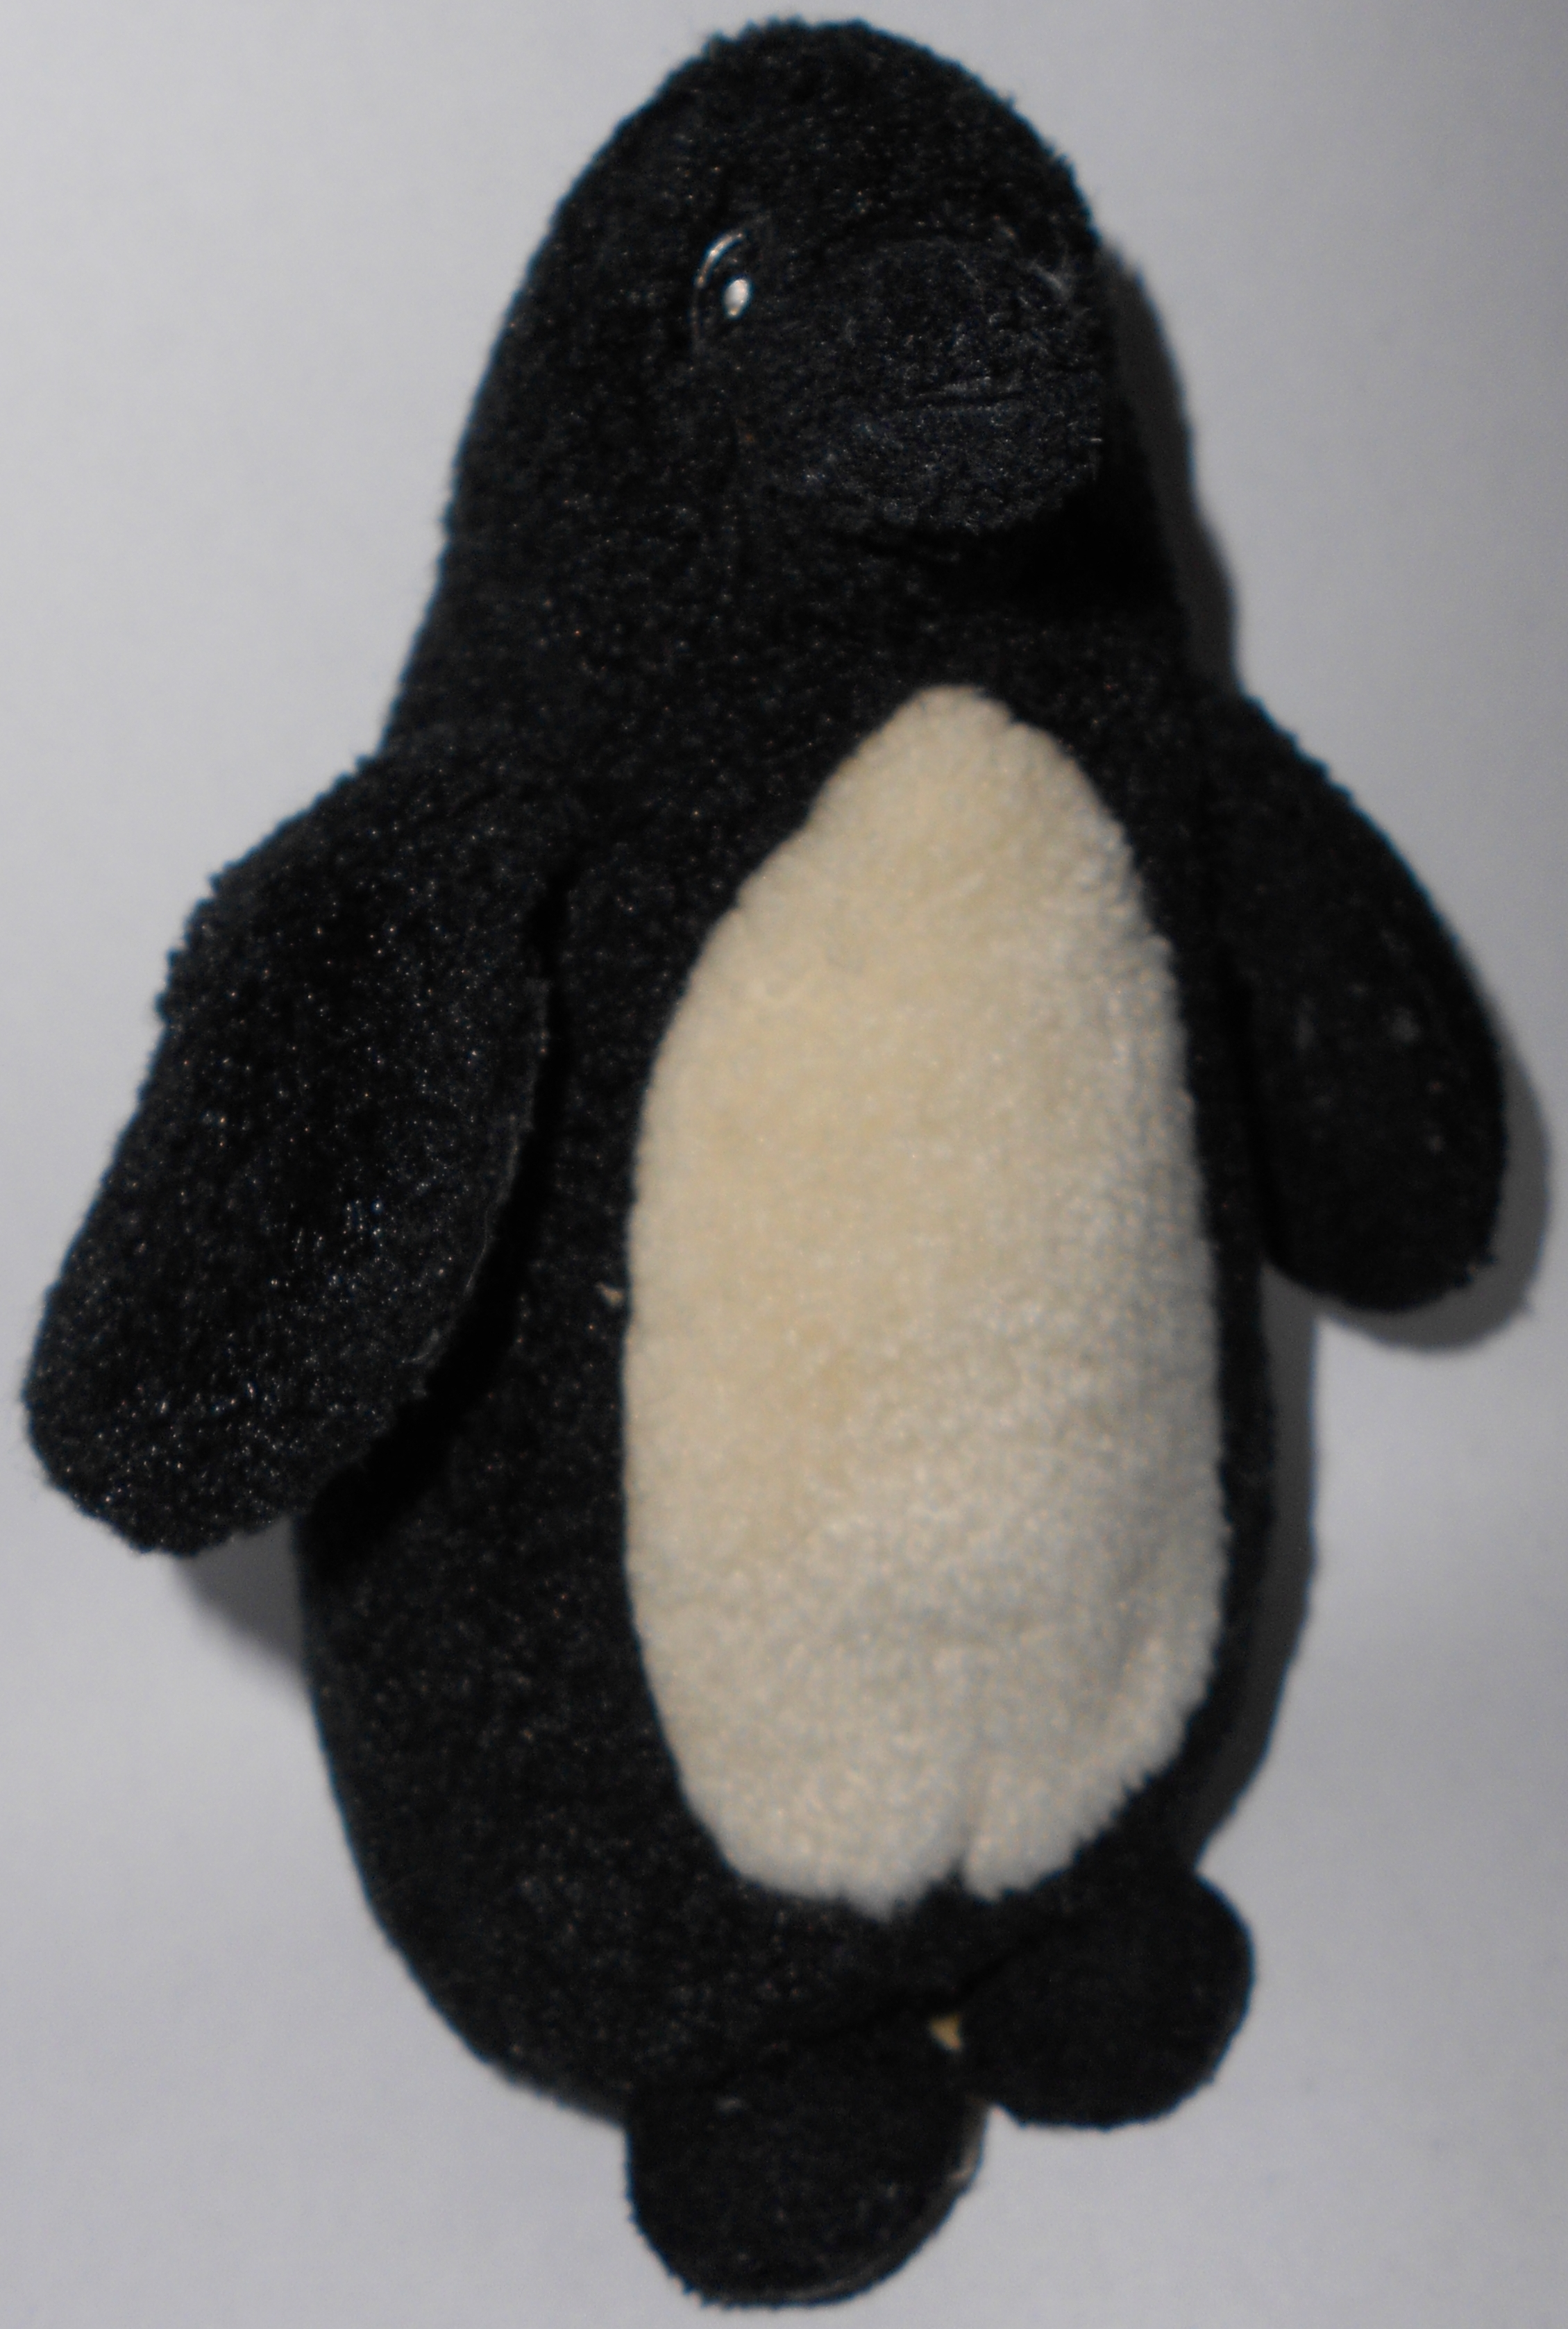 DUPLO Penguin Plush